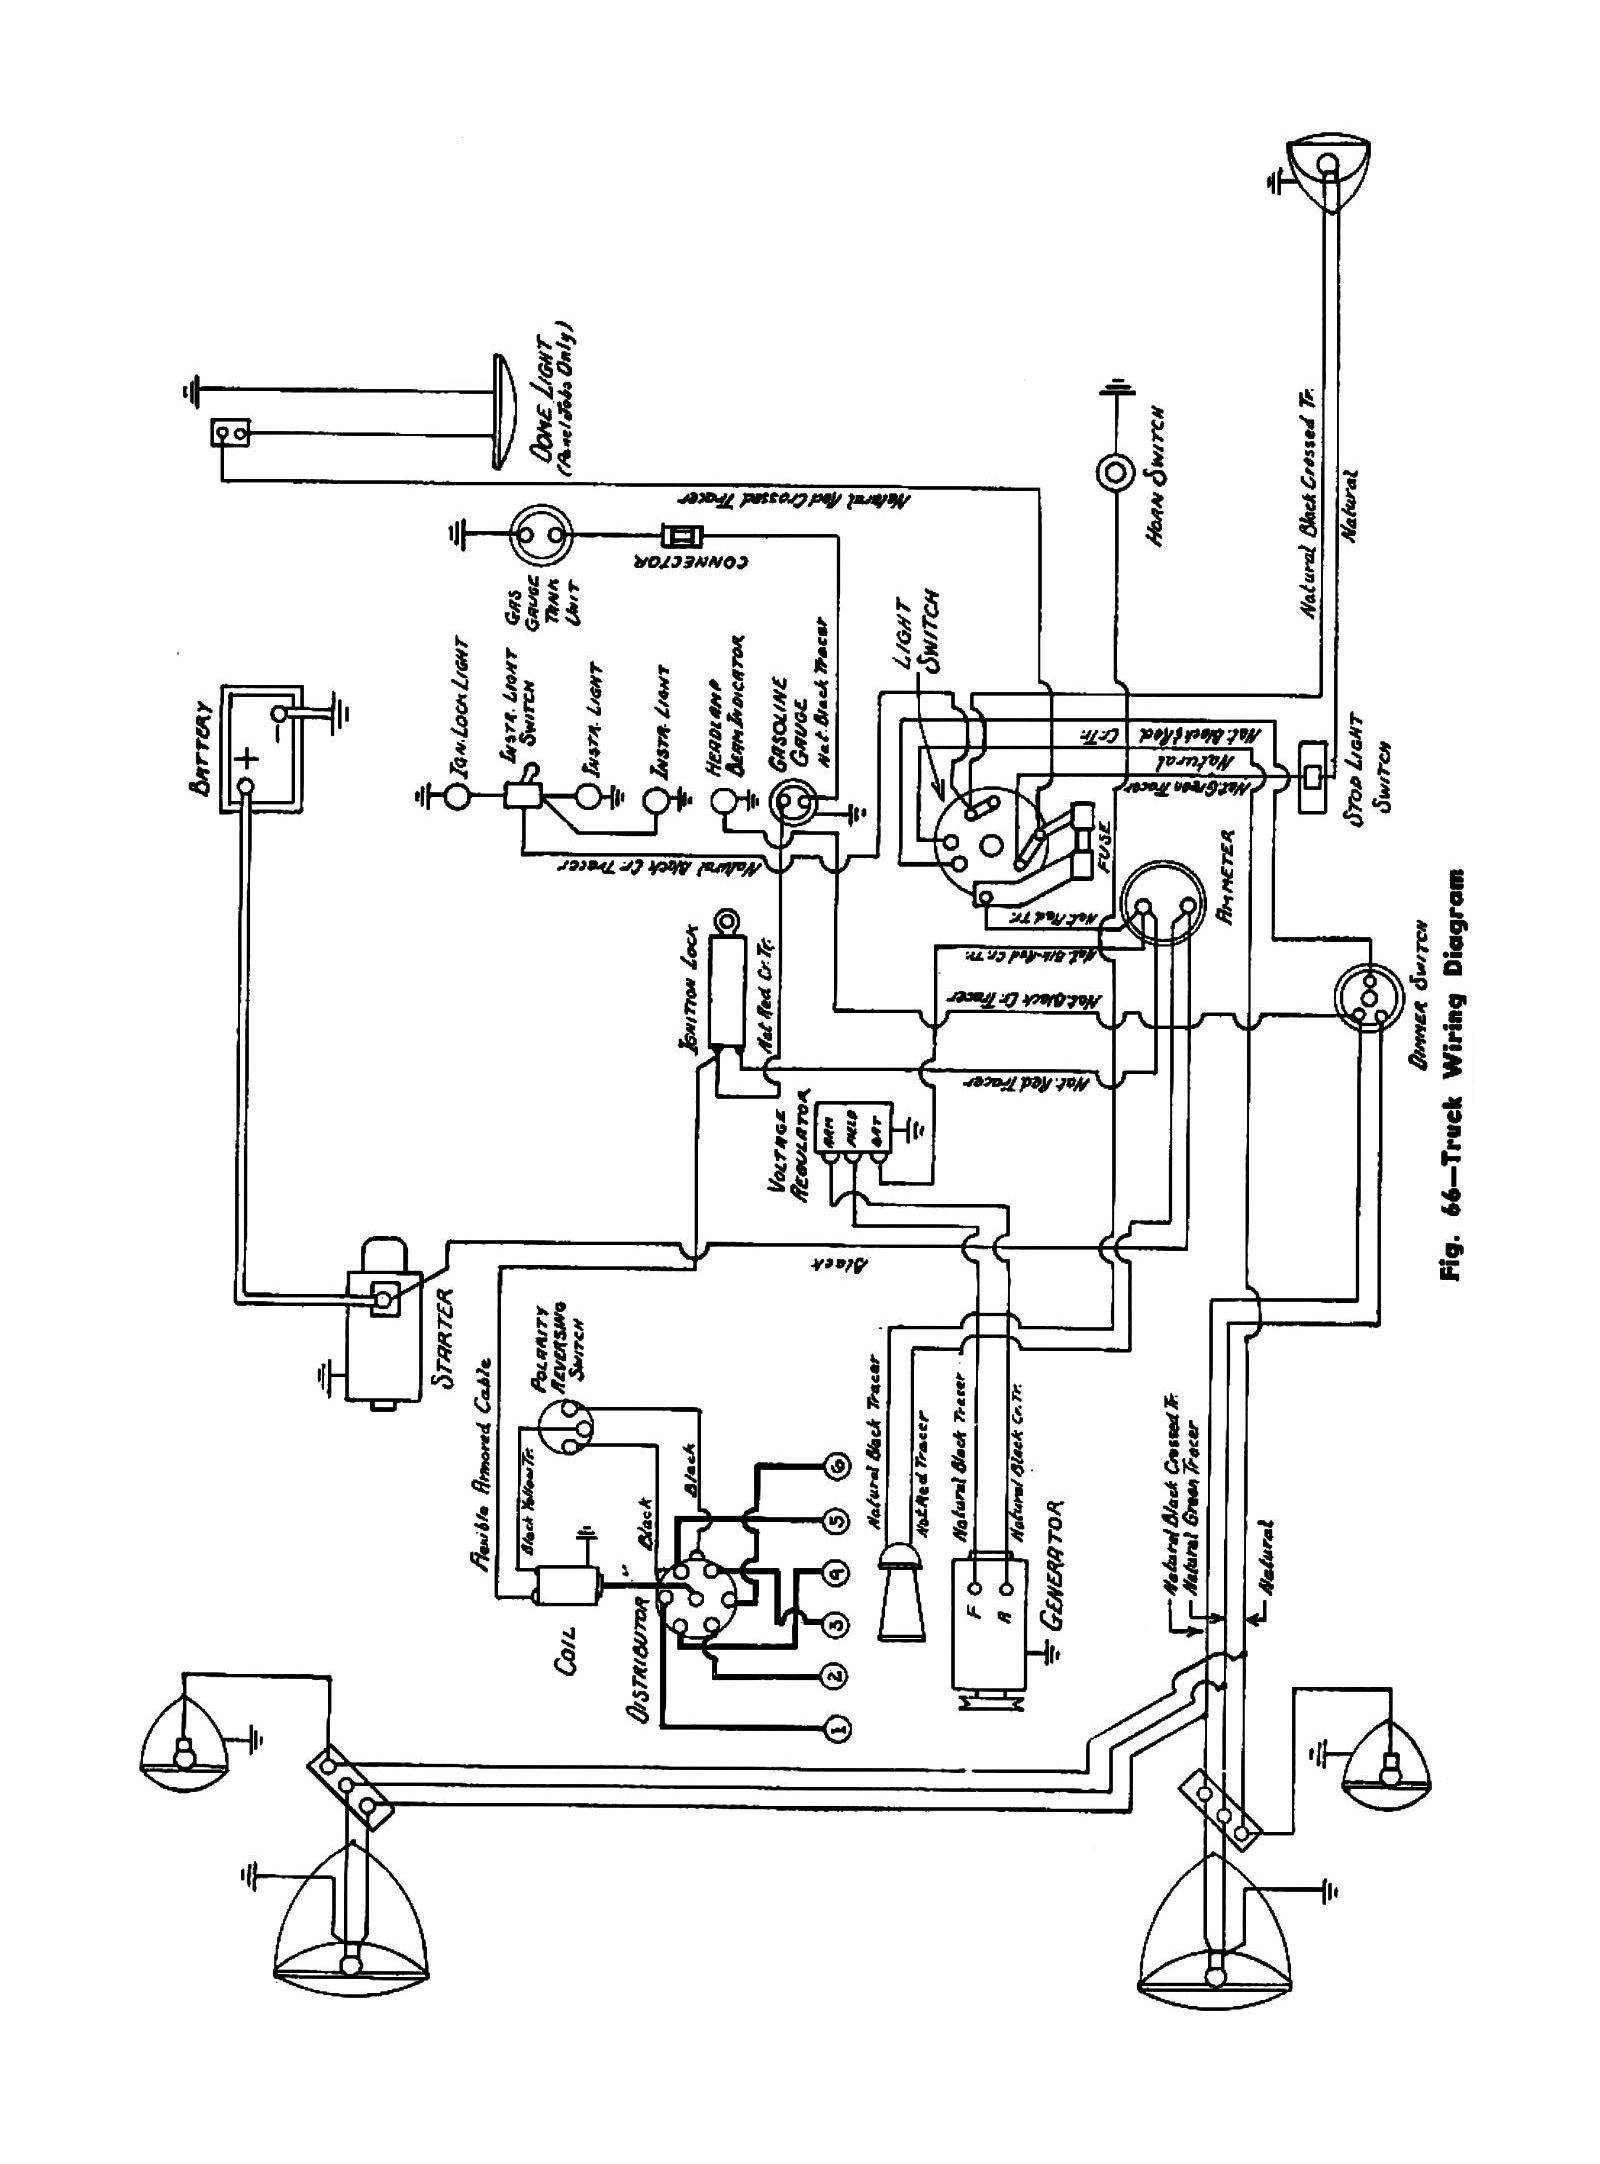 45truck ihc truck wiring diagrams mazda truck wiring diagrams \u2022 free Chevy Truck Fuse Box Diagram at pacquiaovsvargaslive.co